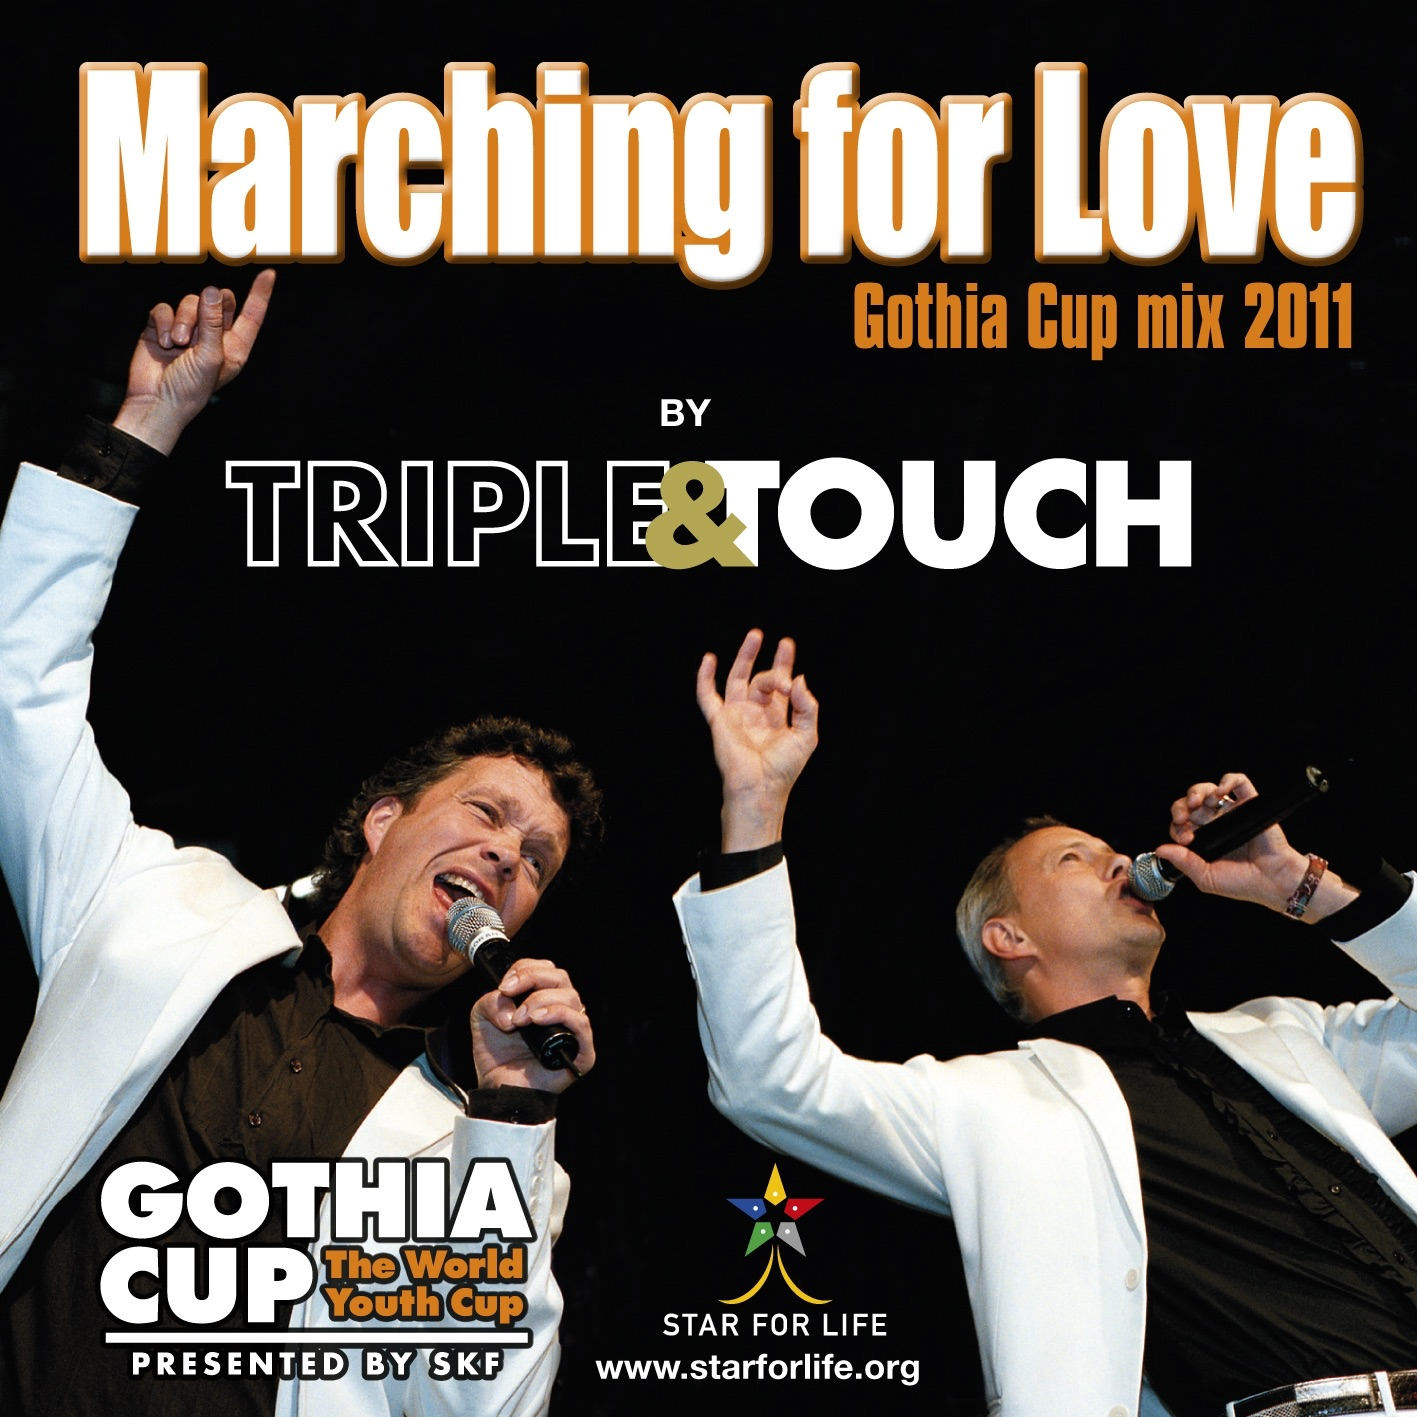 Marching For Love (Gothia Cup Mix) - Single